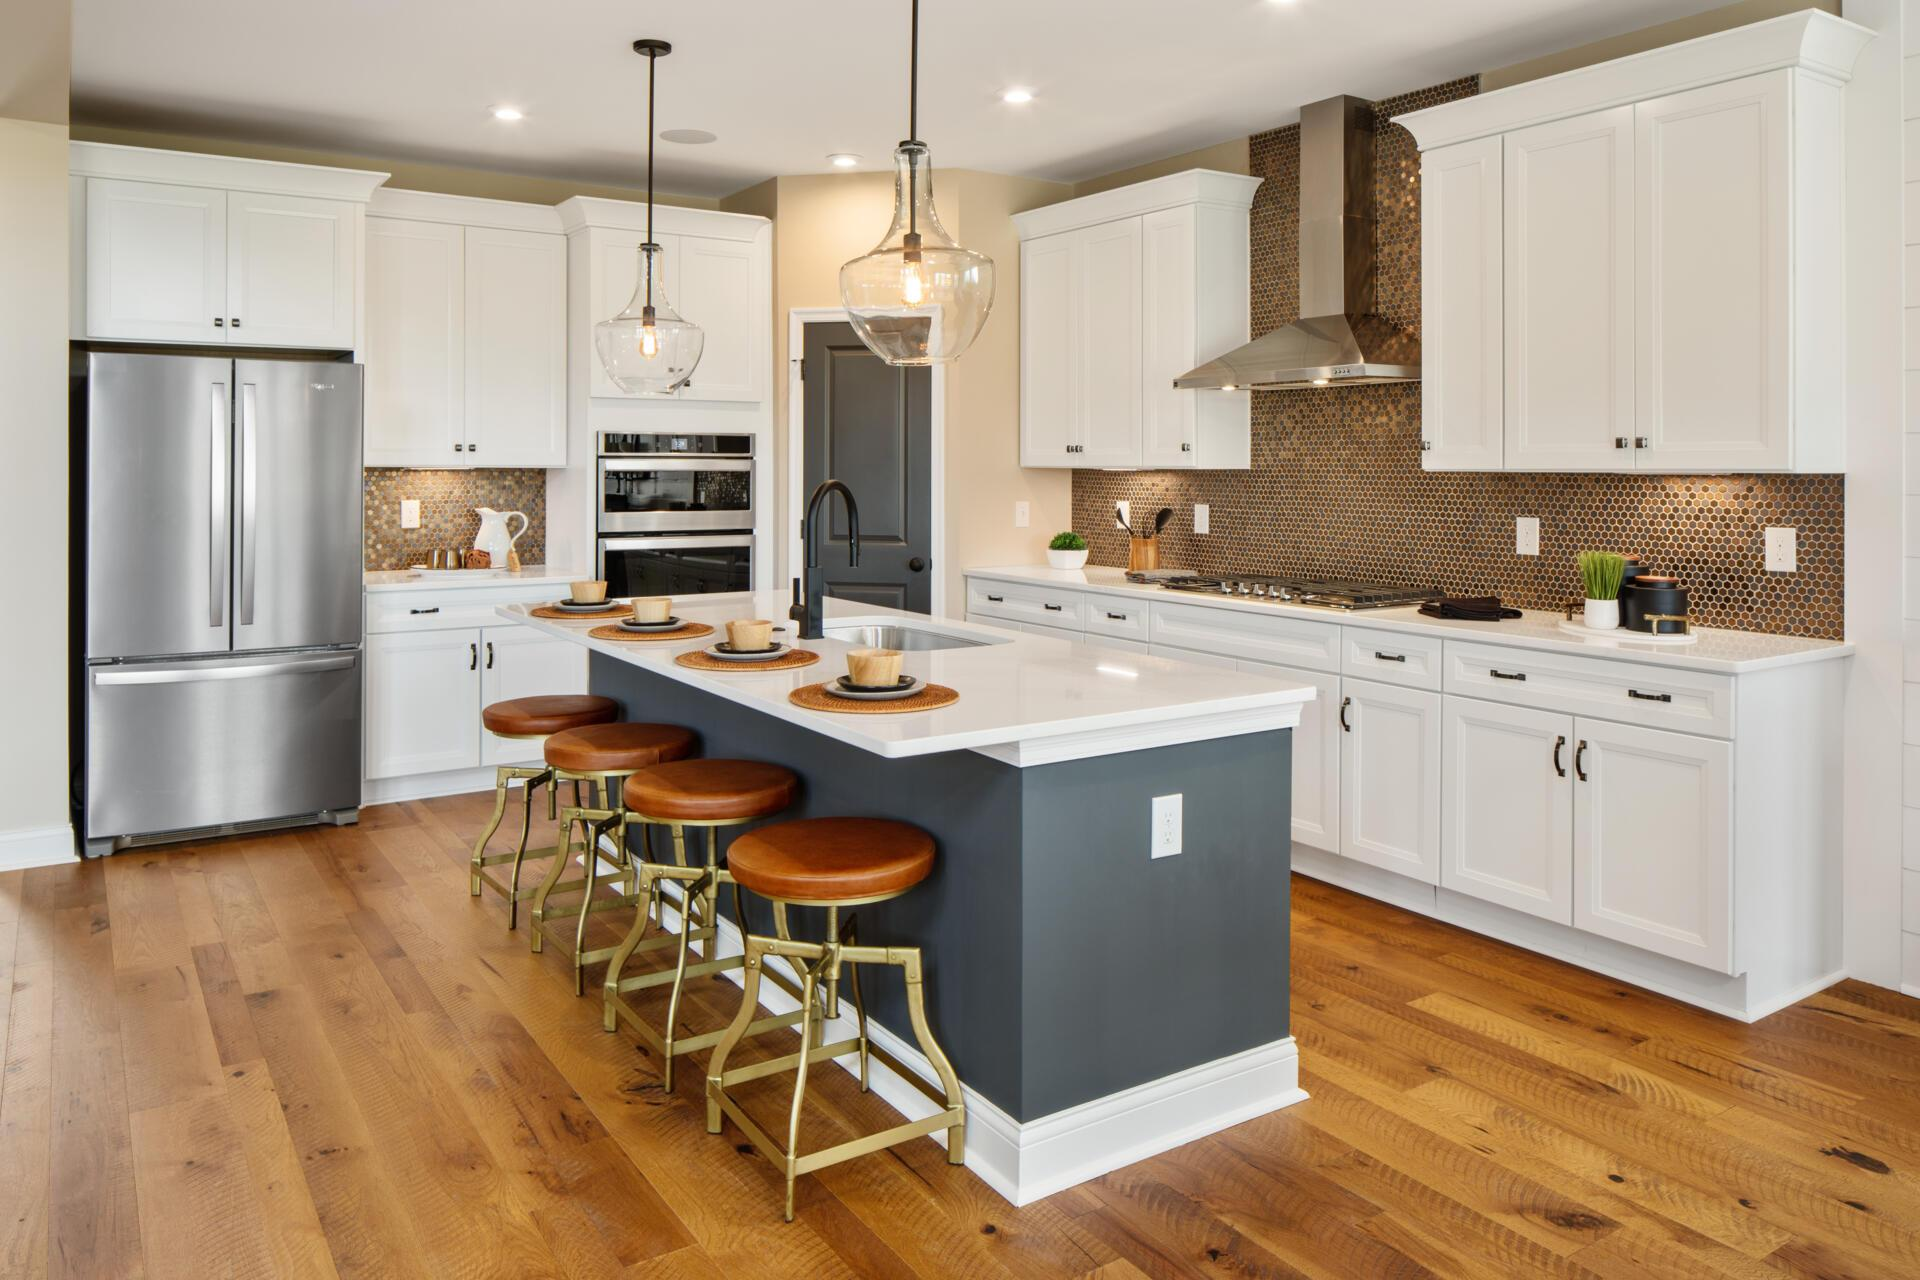 Kitchen featured in the Alden By Drees Homes in Cincinnati, OH